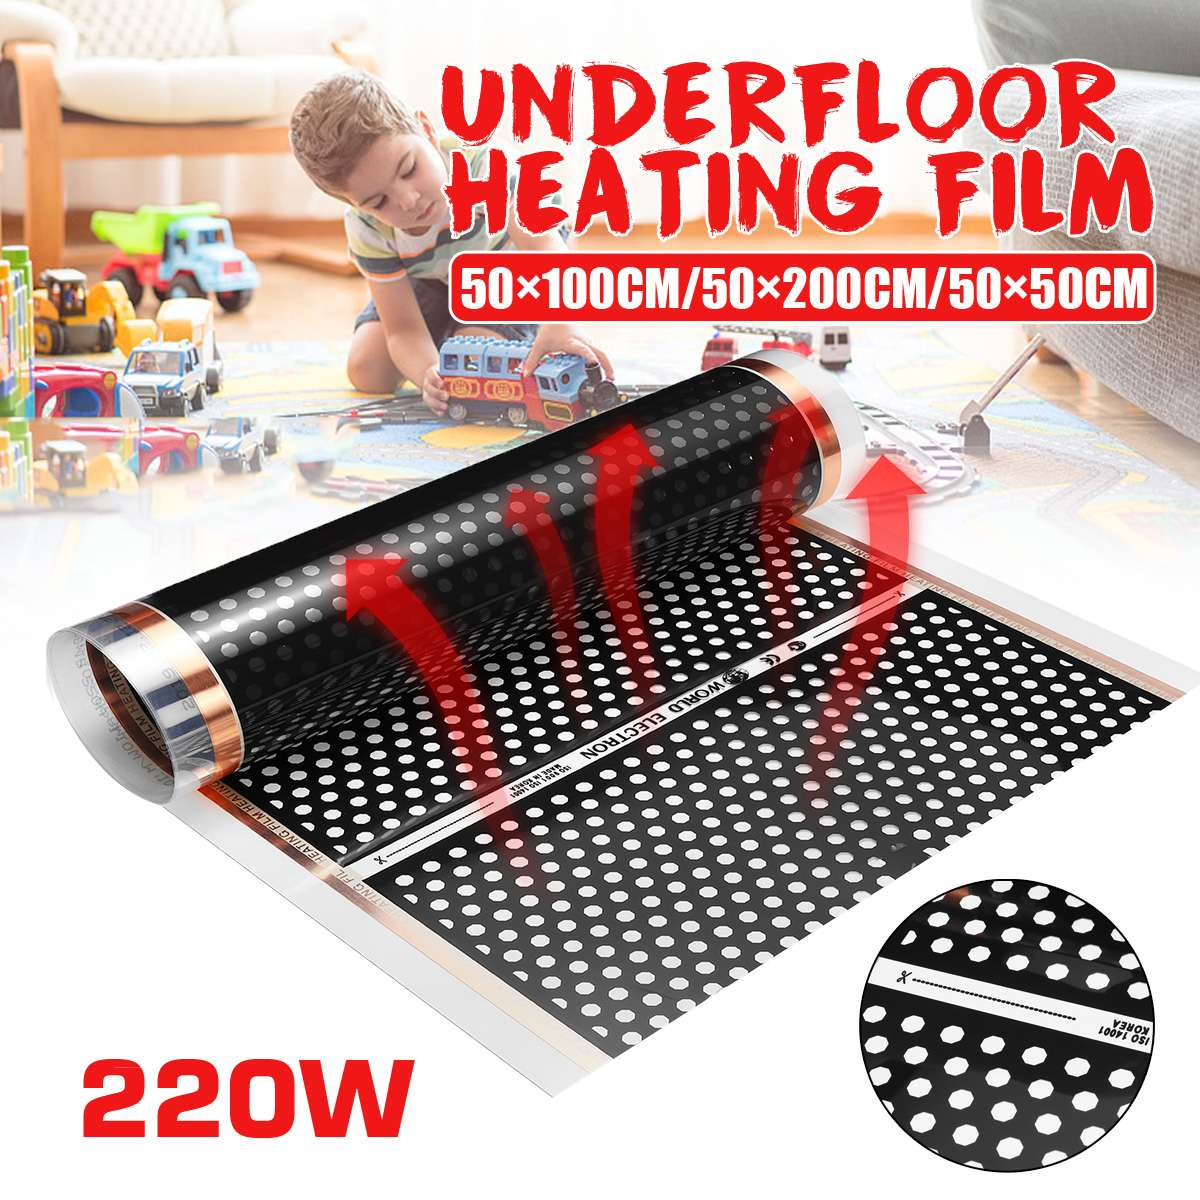 50cm Underfloor Infrared Heater Electric Floor Heating Film Floor Warmer Warm Mat Laminate / Solid Flooring Heating System